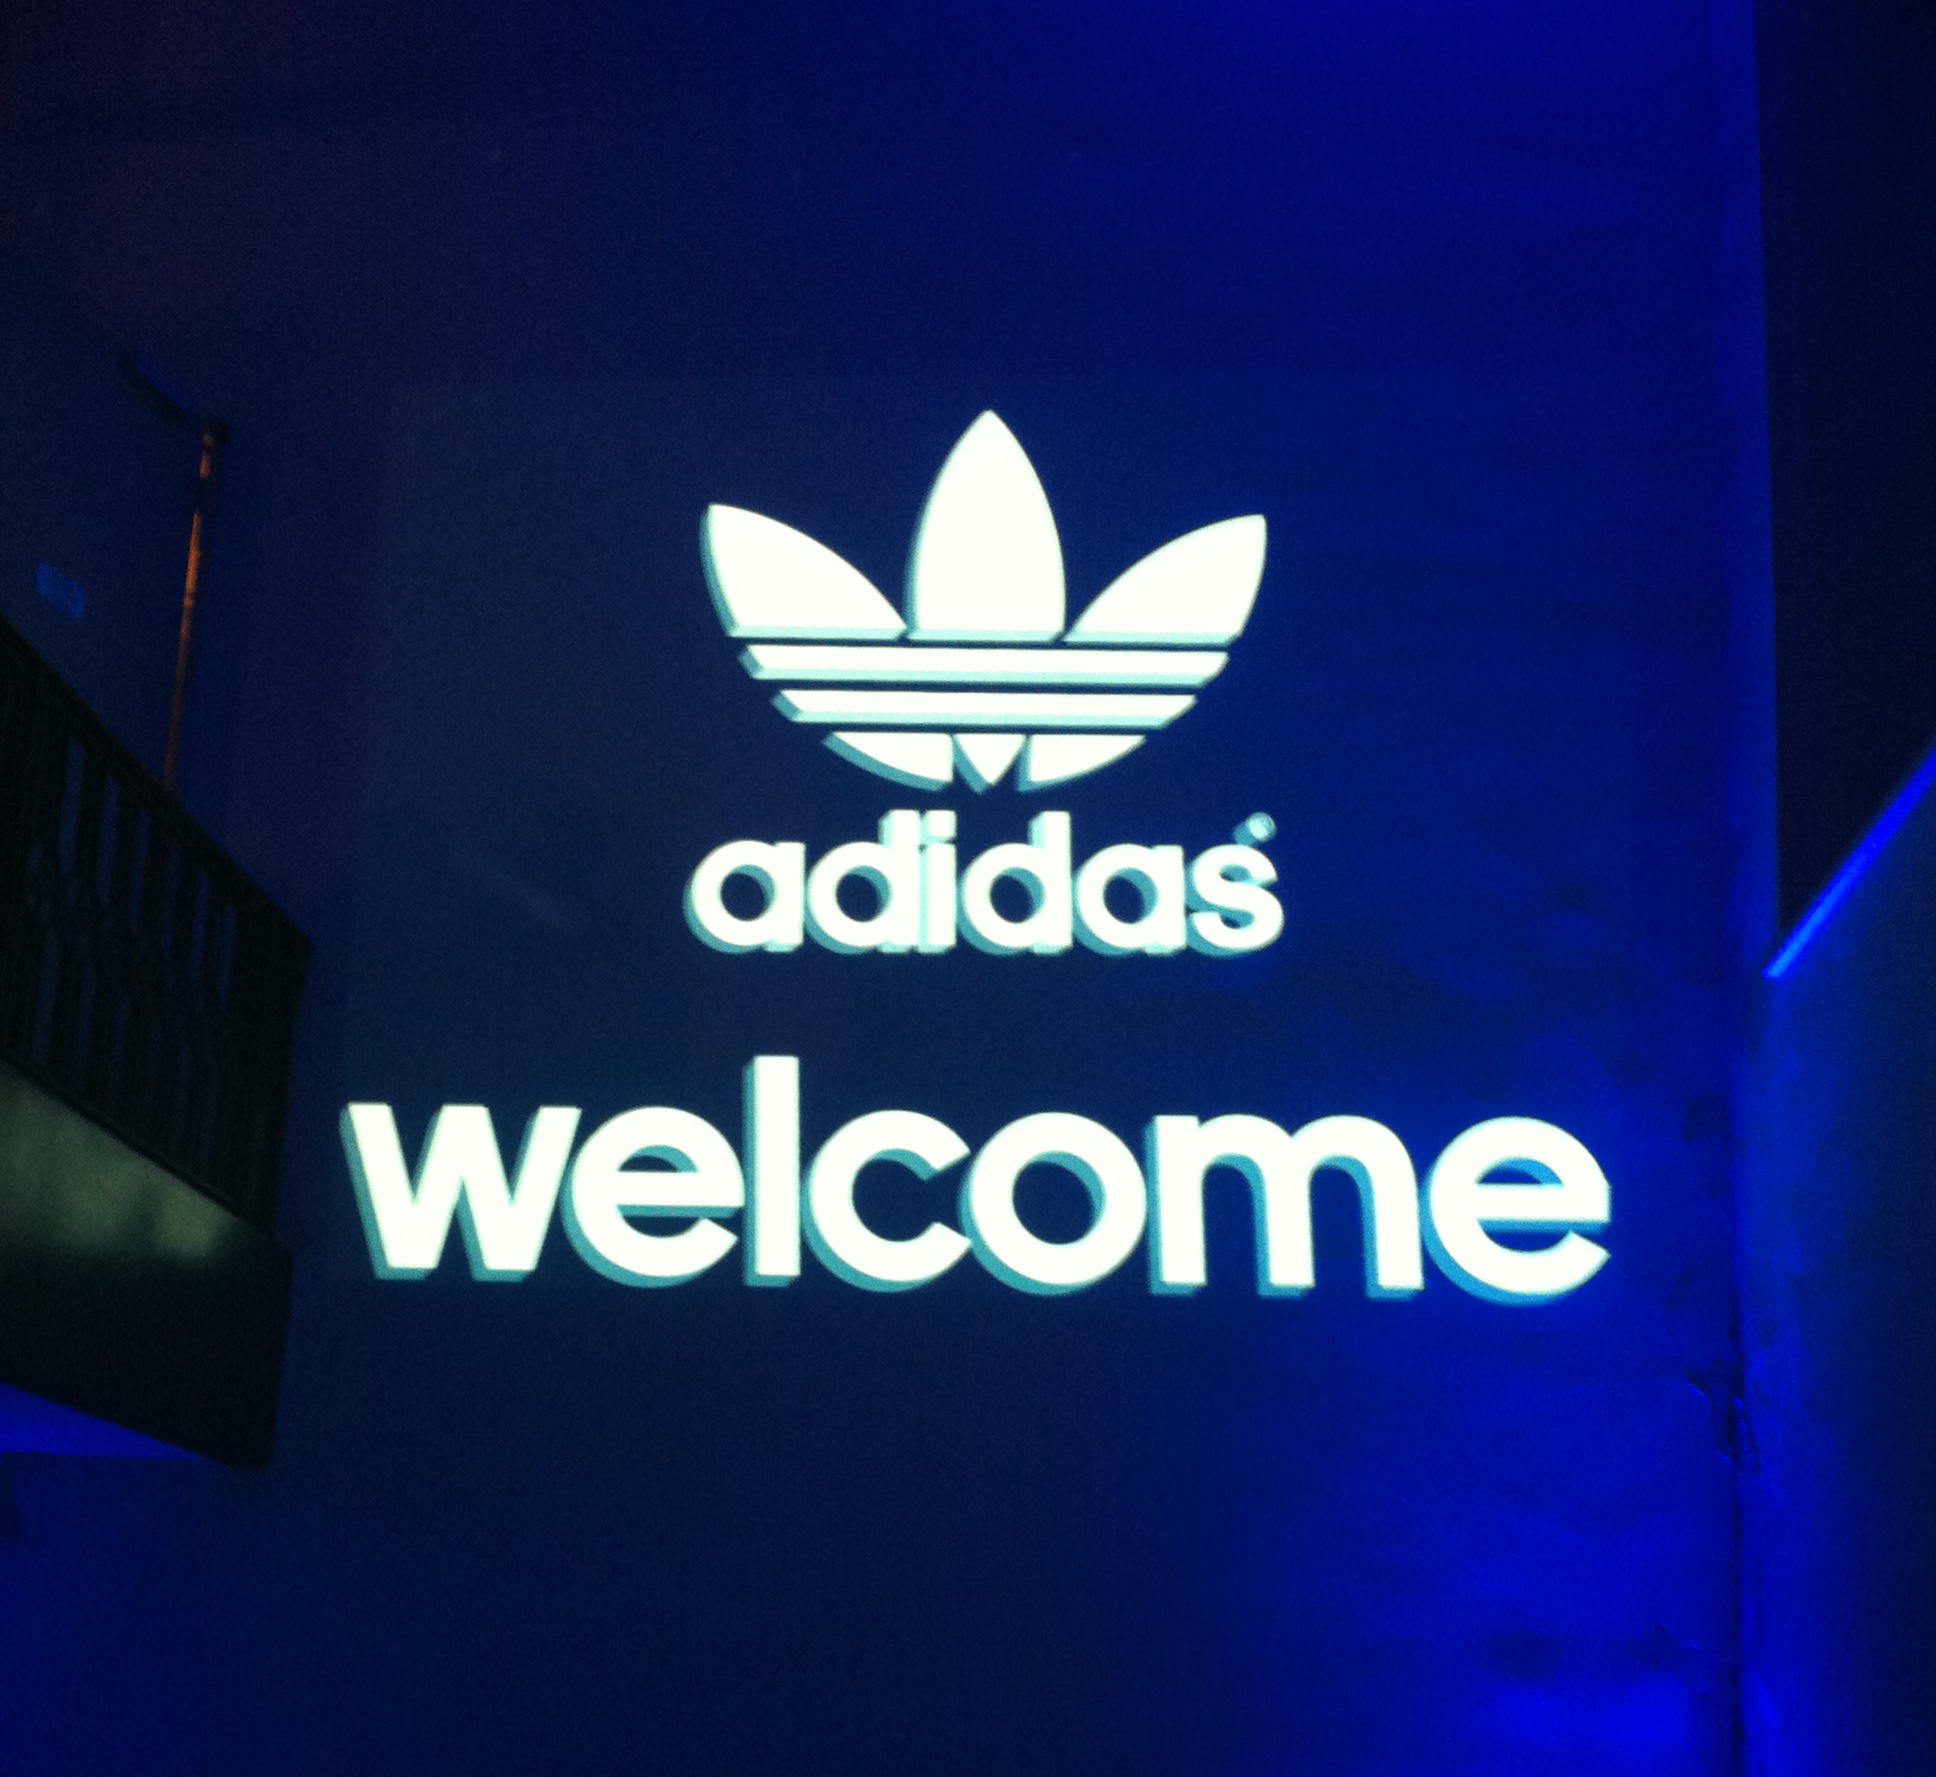 adidas welcome